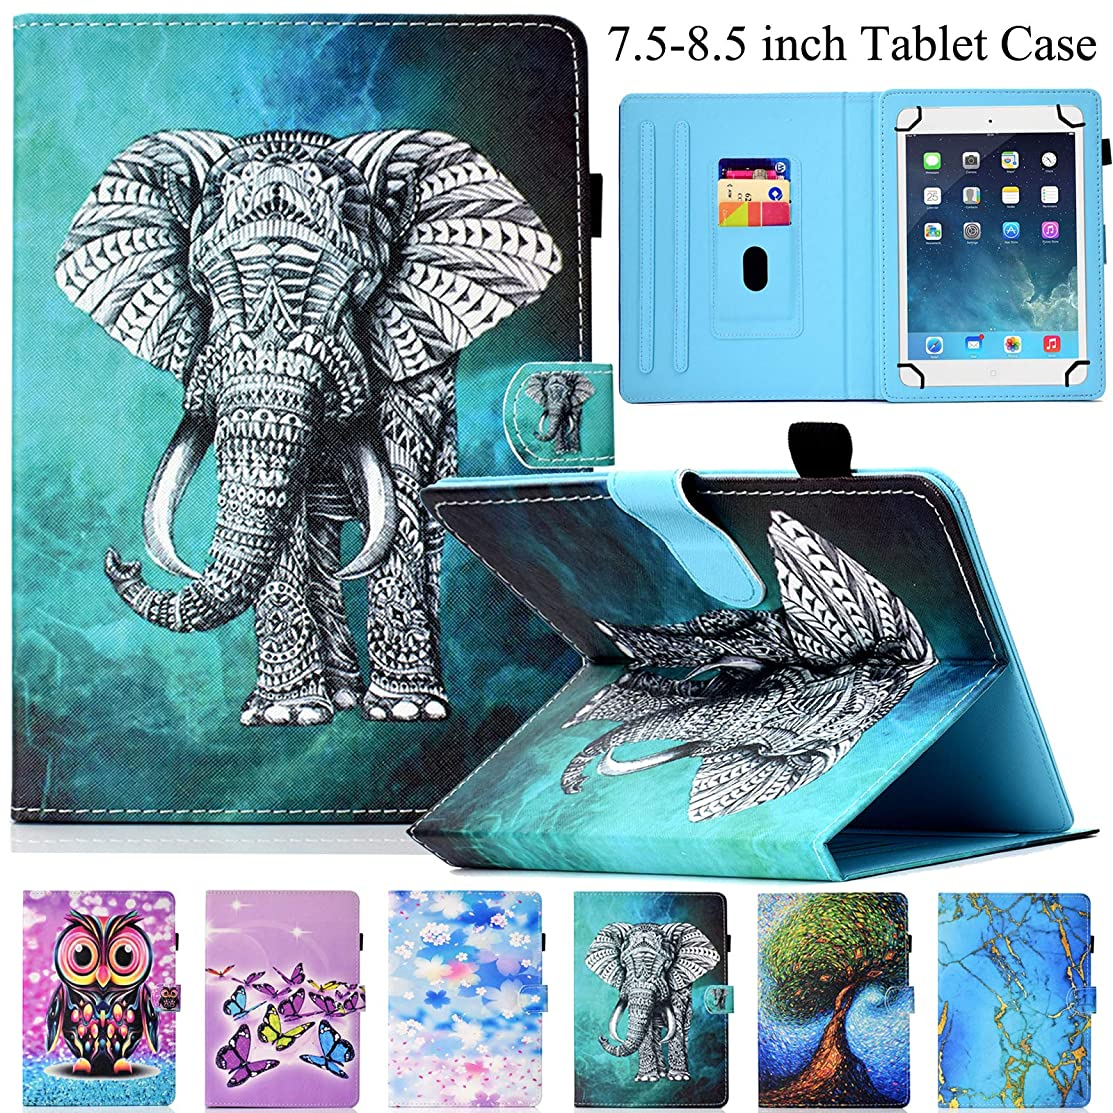 Universal Case for 7.5-8.5 inch Tablet, Artyond PU Leather Stand Cover Cards Slots Case for iPad Mini1/2/3/4,Fire HD 8,Galaxy Tab E/Tab A 8.0 & Other 7.5-8.5 inch Andriod,iOS Tablet (Gray Elephant)